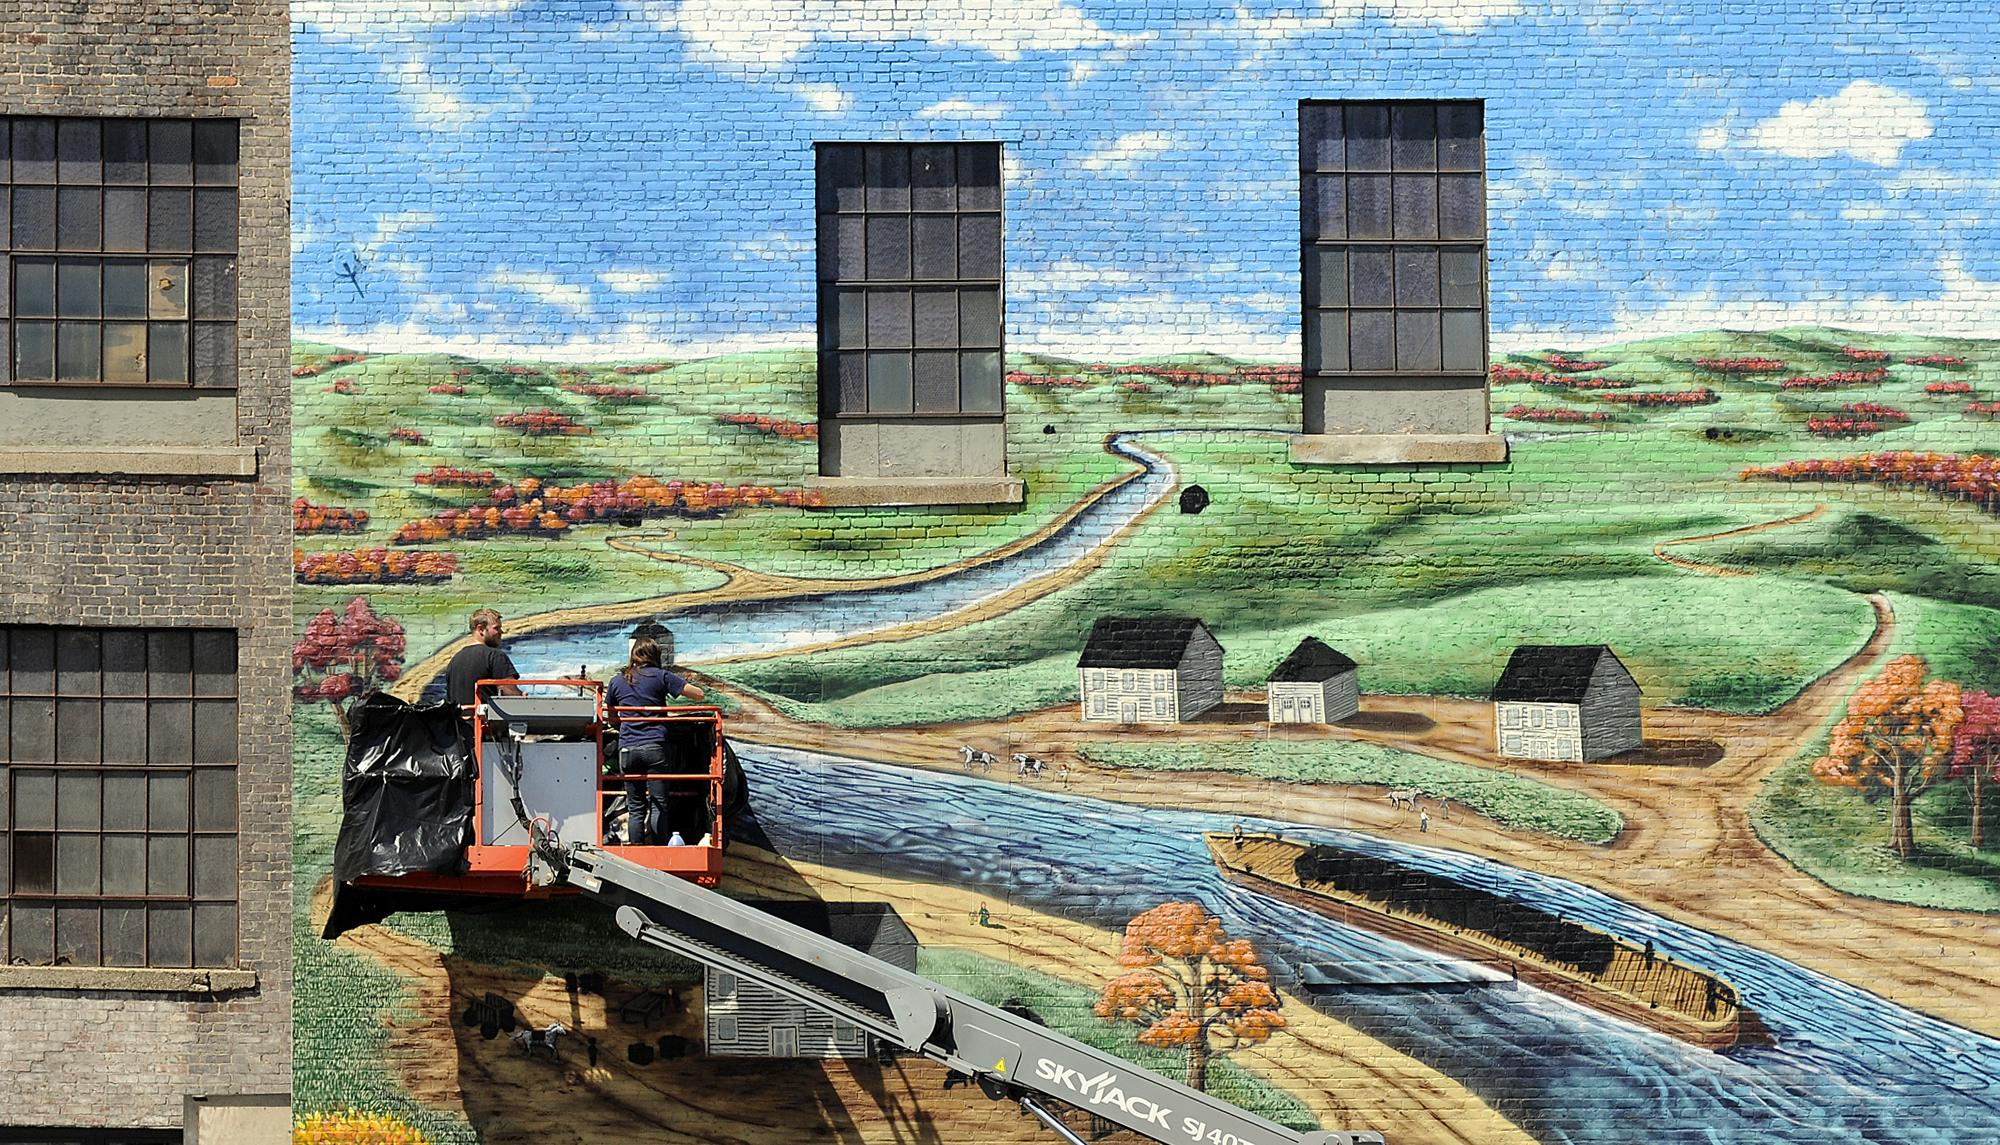 Canal District Mural (image from the Worcester Telegram)